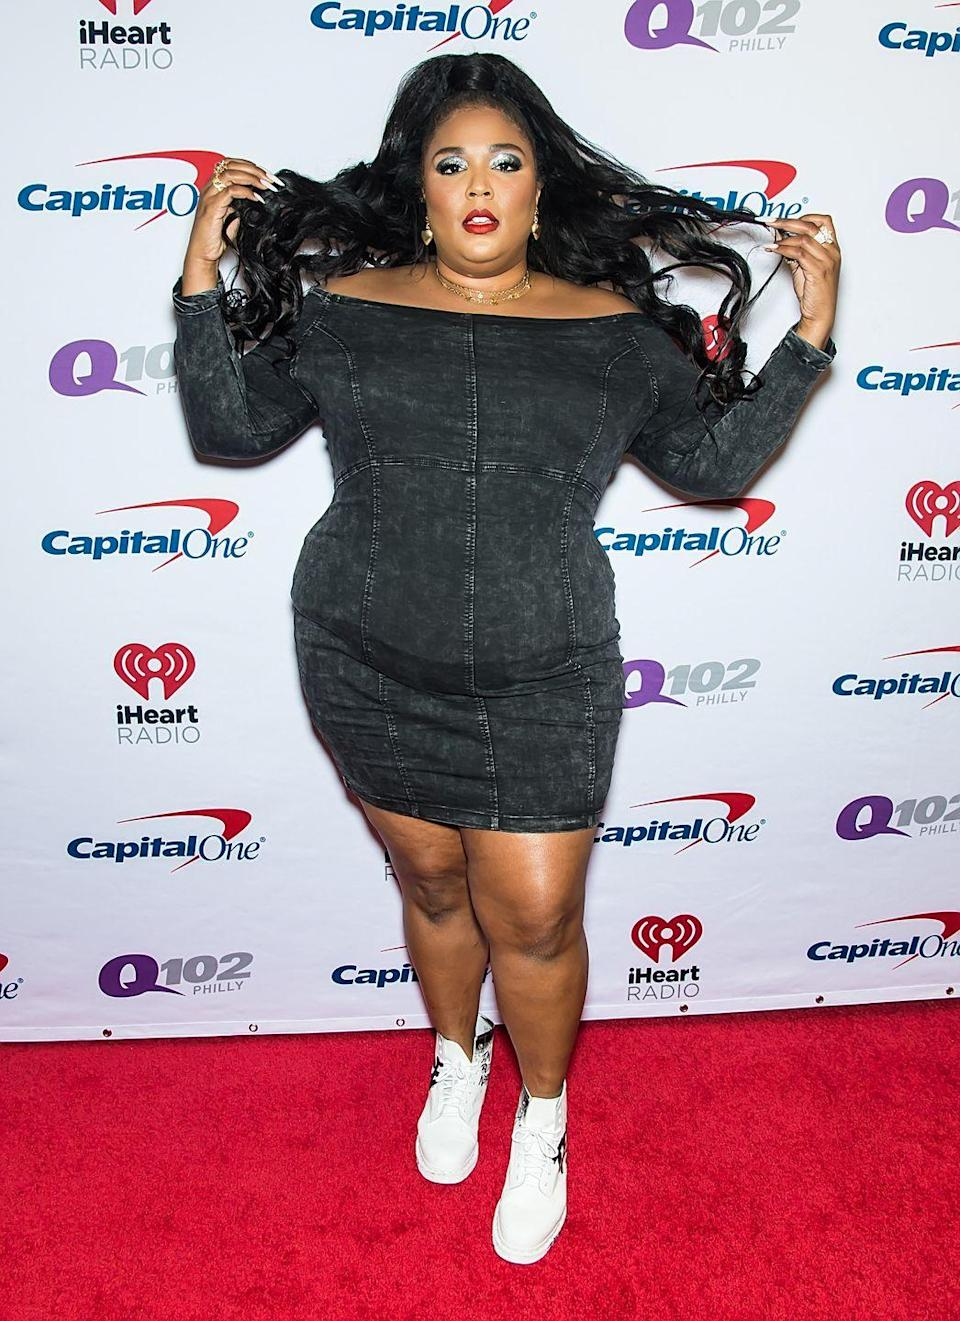 """<p>Believe it or not, Lizzo has been trying to break through for the better part of a decade. Back in 2013, she dropped her first song called """"Batches & Cookies,"""" featuring Sophia Eris. The song didn't have any chart success, but she<a href=""""https://www.youtube.com/watch?v=nQaRQe86suA"""" rel=""""nofollow noopener"""" target=""""_blank"""" data-ylk=""""slk:made a video for it"""" class=""""link rapid-noclick-resp""""> made a video for it</a> and everything. The release of Coconut Oil, featuring her single """"Good As Hell"""" really got her career moving.</p><p><a class=""""link rapid-noclick-resp"""" href=""""https://www.amazon.com/dp/B01LR0H3WO/ref=ap_ws_tlw_trk1?tag=syn-yahoo-20&ascsubtag=%5Bartid%7C10063.g.30535280%5Bsrc%7Cyahoo-us"""" rel=""""nofollow noopener"""" target=""""_blank"""" data-ylk=""""slk:BUY NOW"""">BUY NOW</a></p>"""